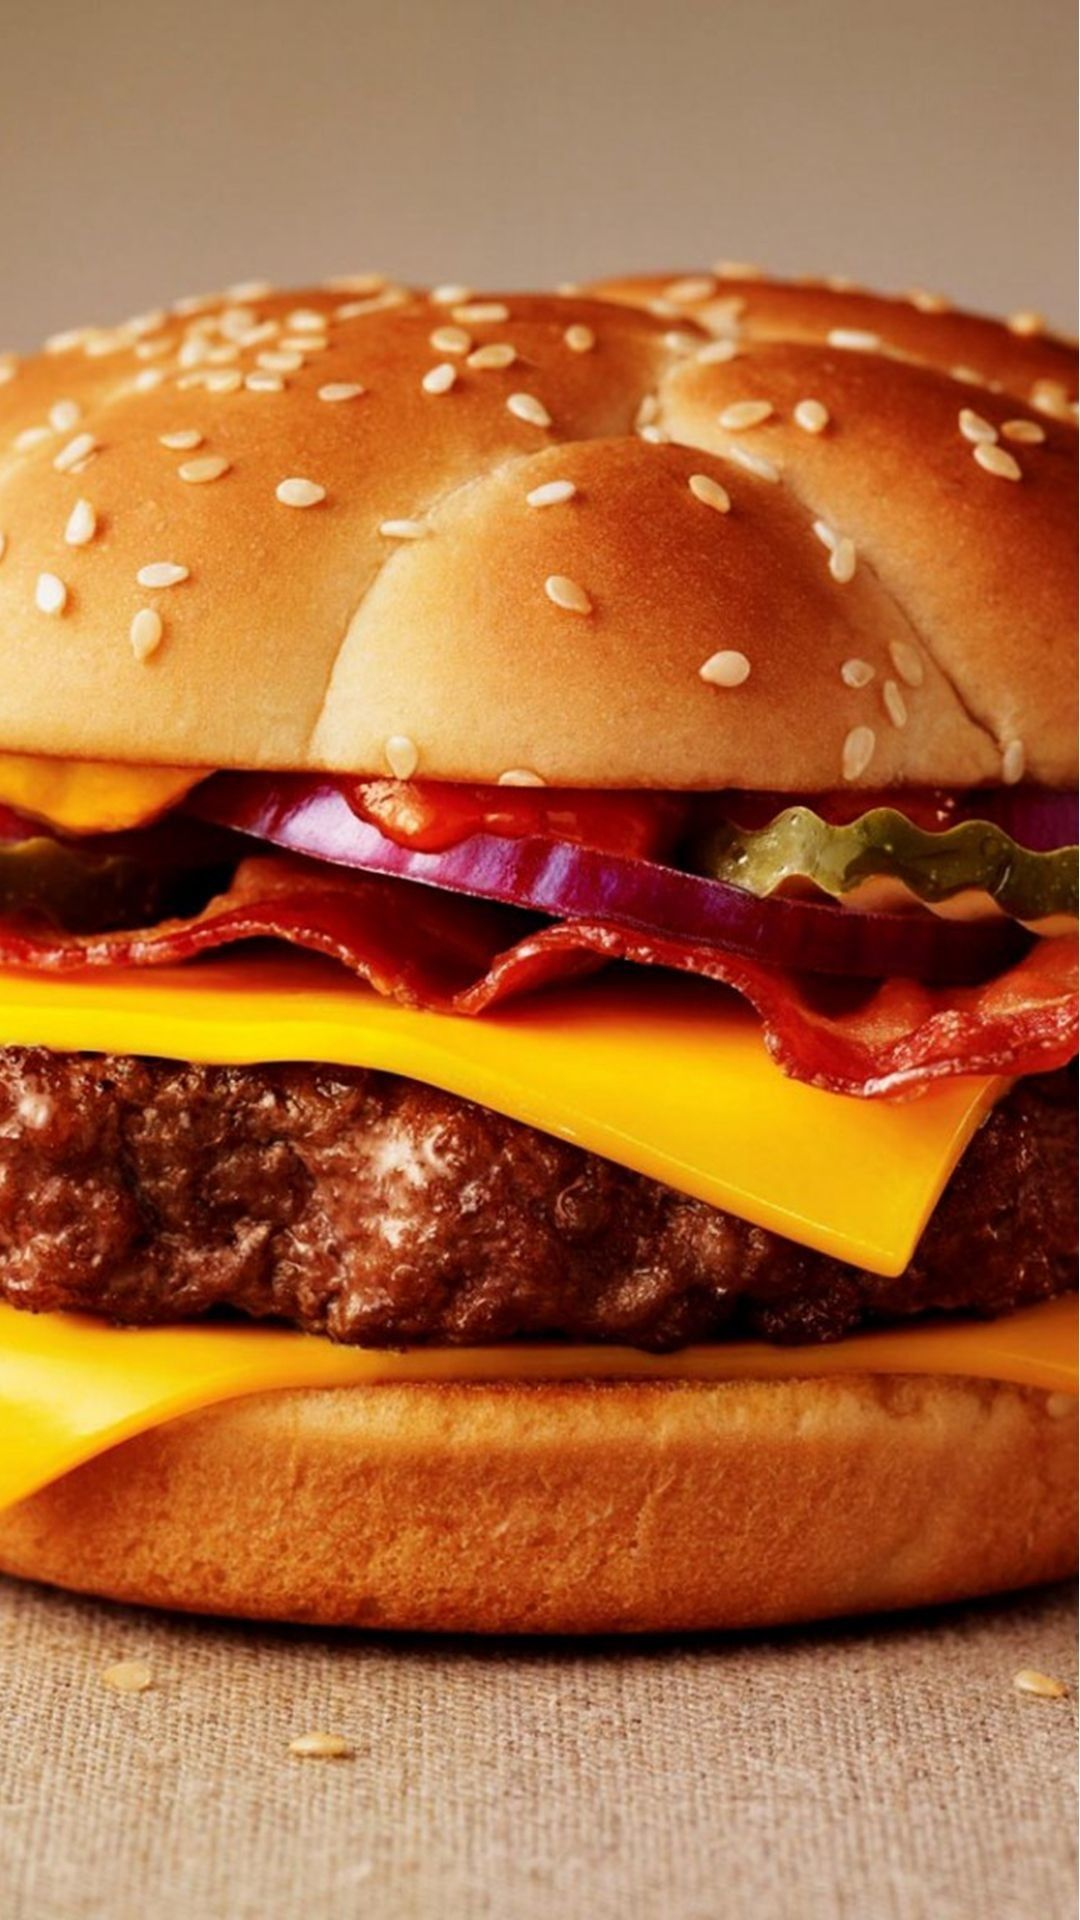 1080x1920 Cheeseburger Wallpapers (61+ background pictures)